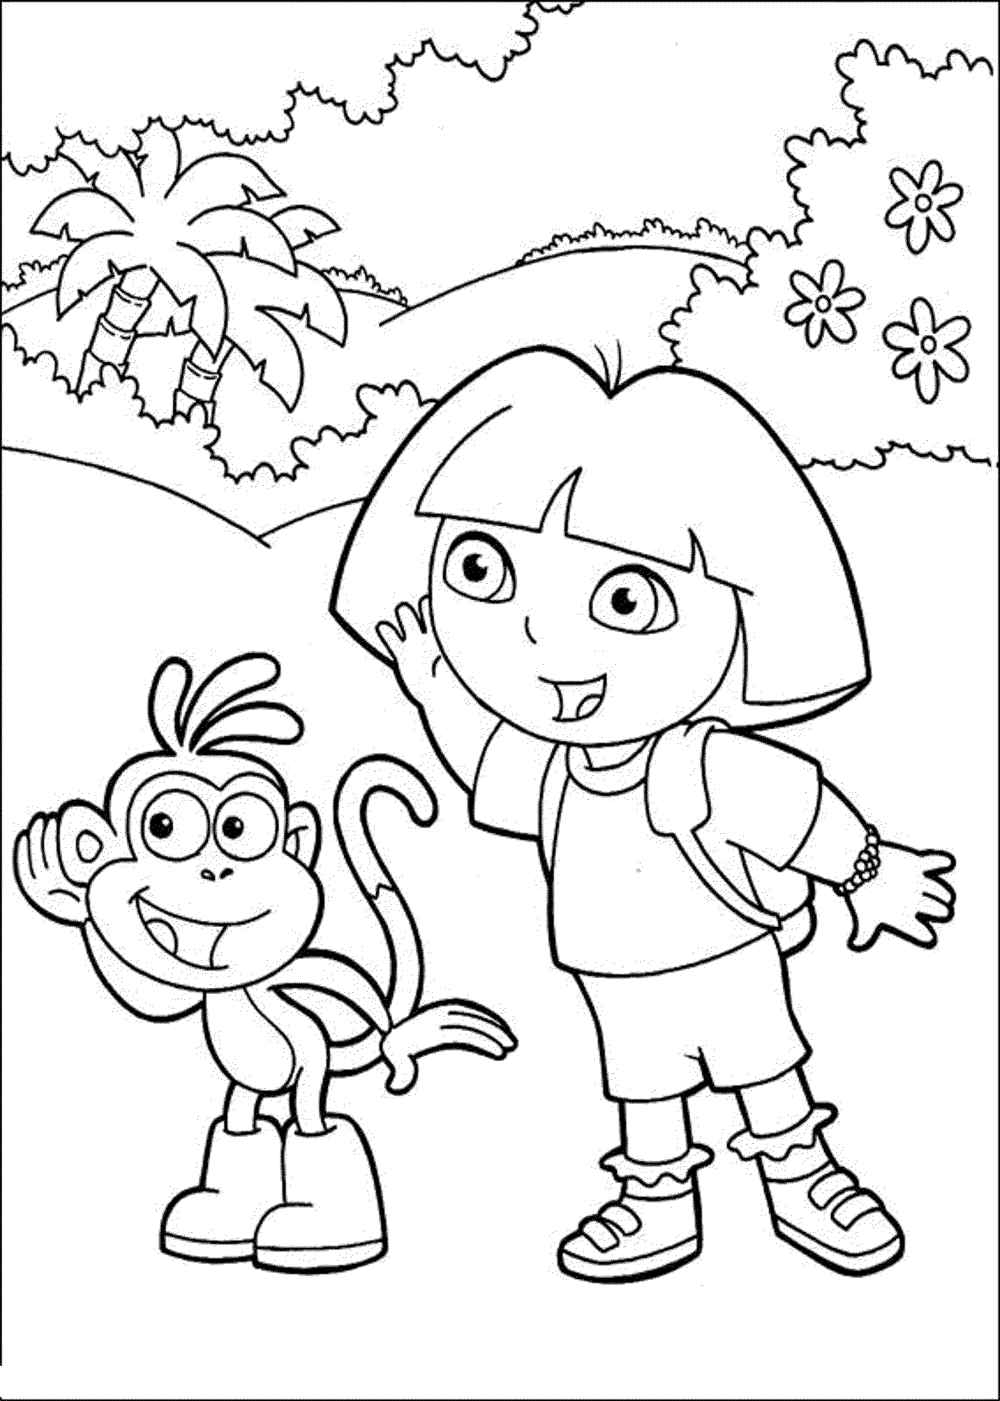 free printable dora coloring pages dora the explorer free coloring pages coloringpages4kidzcom coloring dora pages printable free